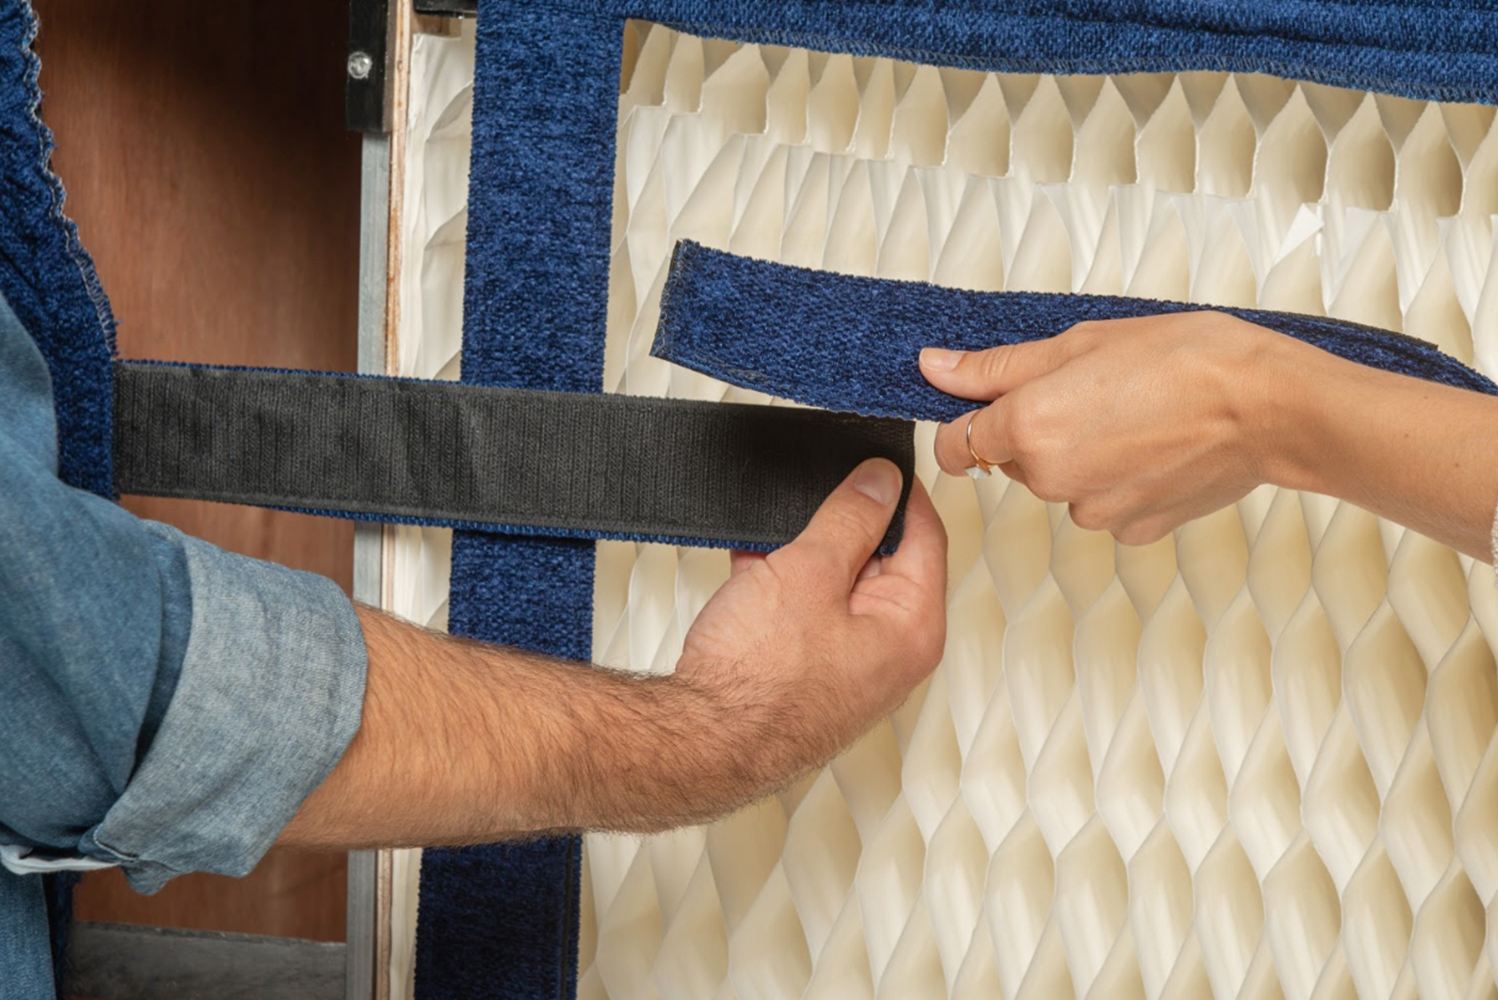 No tools are needed to set it up or tear it down, making this sofa's installation hassle-free.